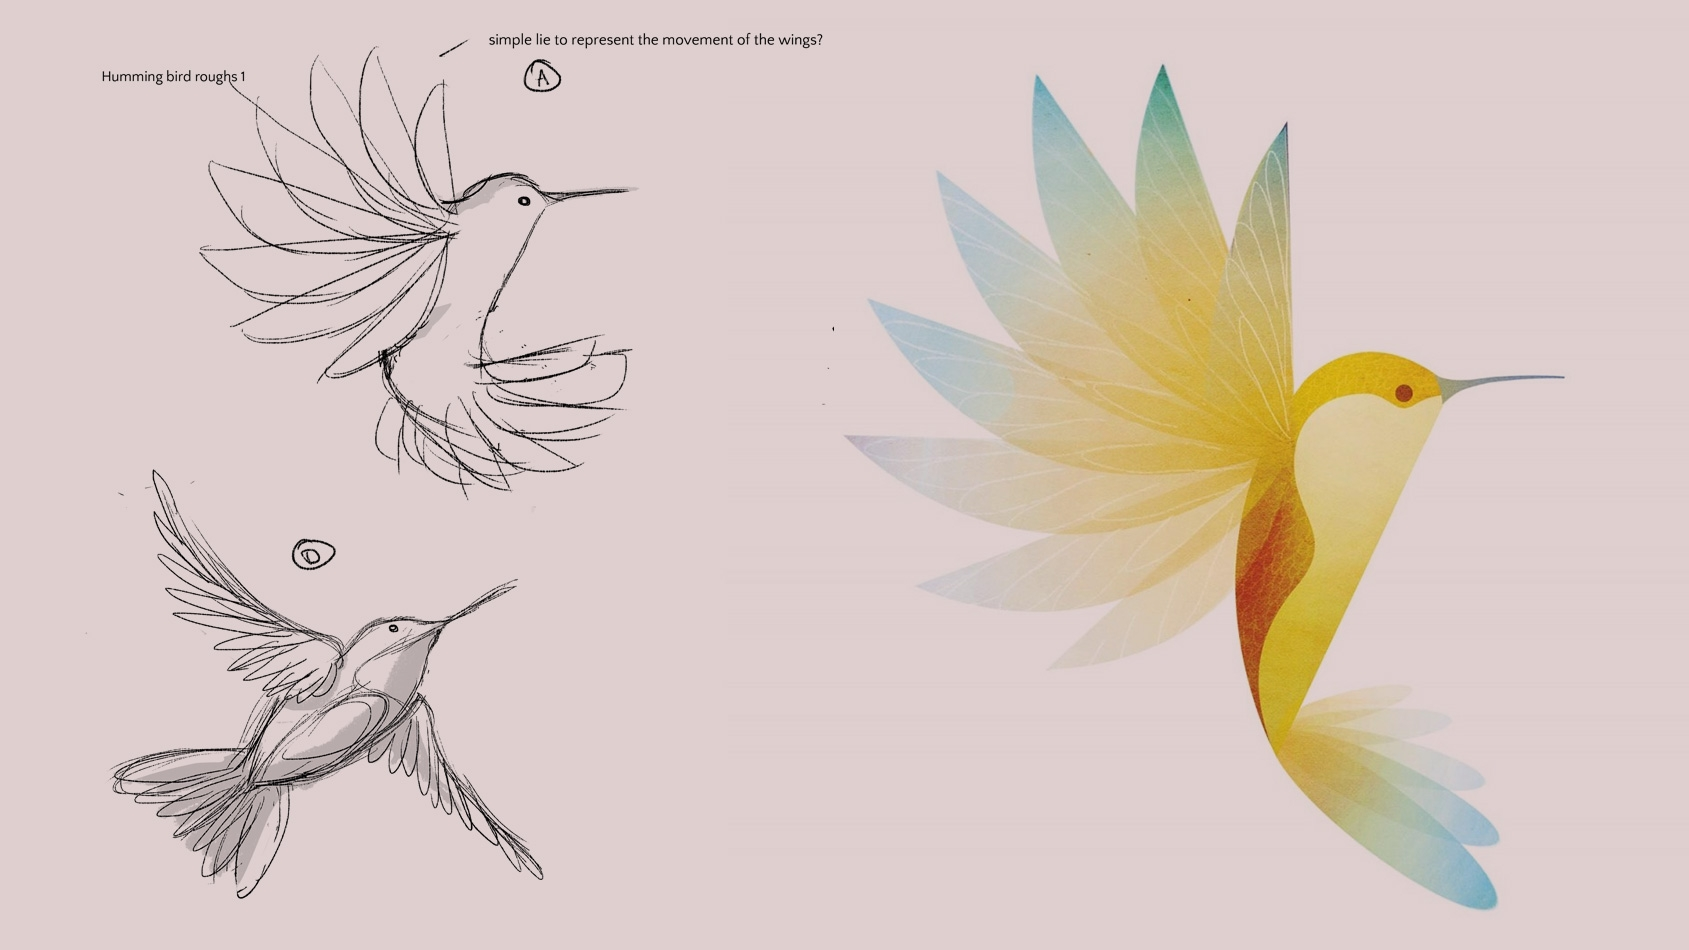 How to draw birds 18 tips for both hand drawn and vector illustration digital arts